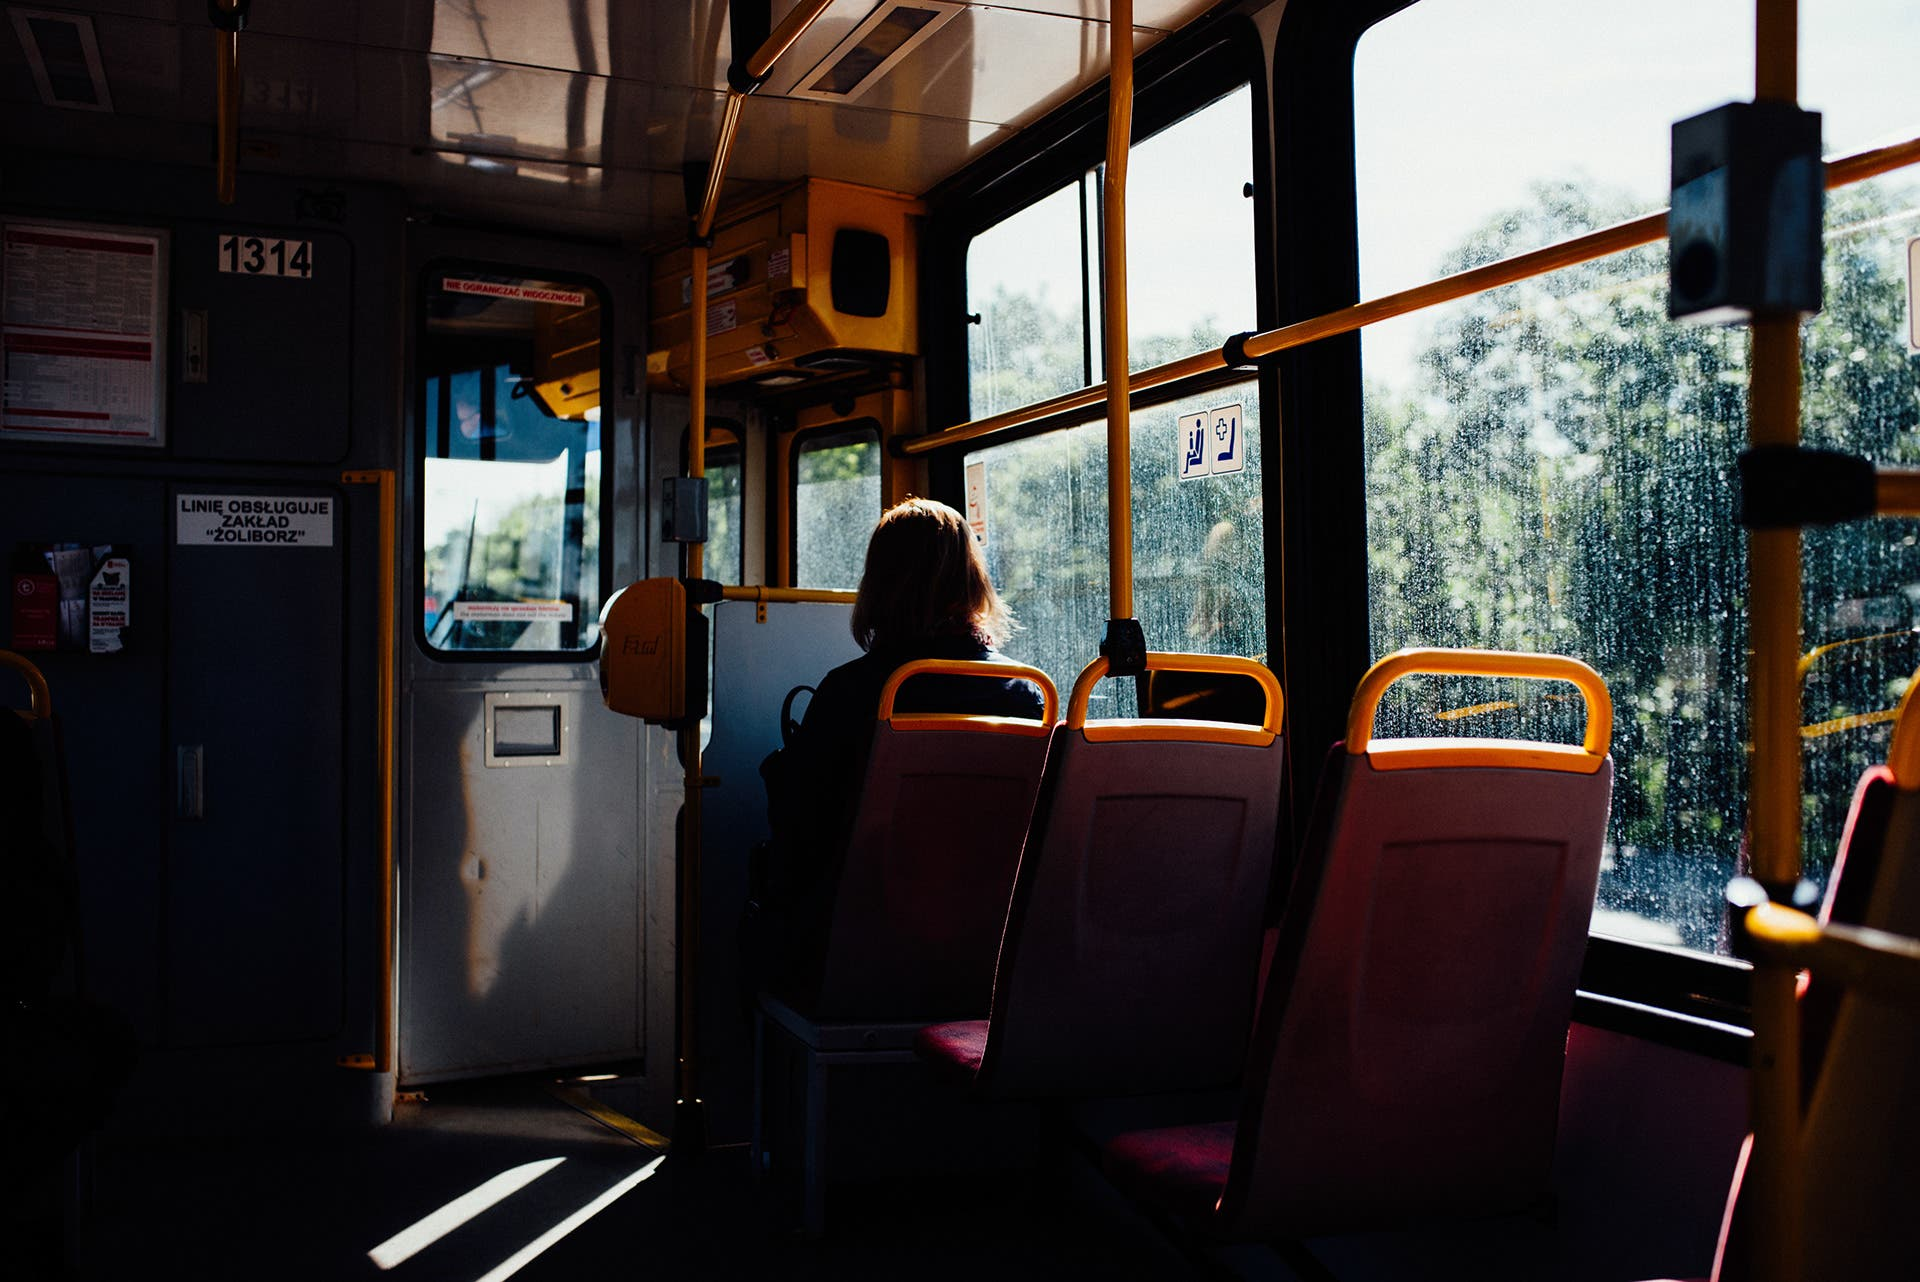 Erik Witsoe Captures Beauty in Daily Commute from the Window Seat